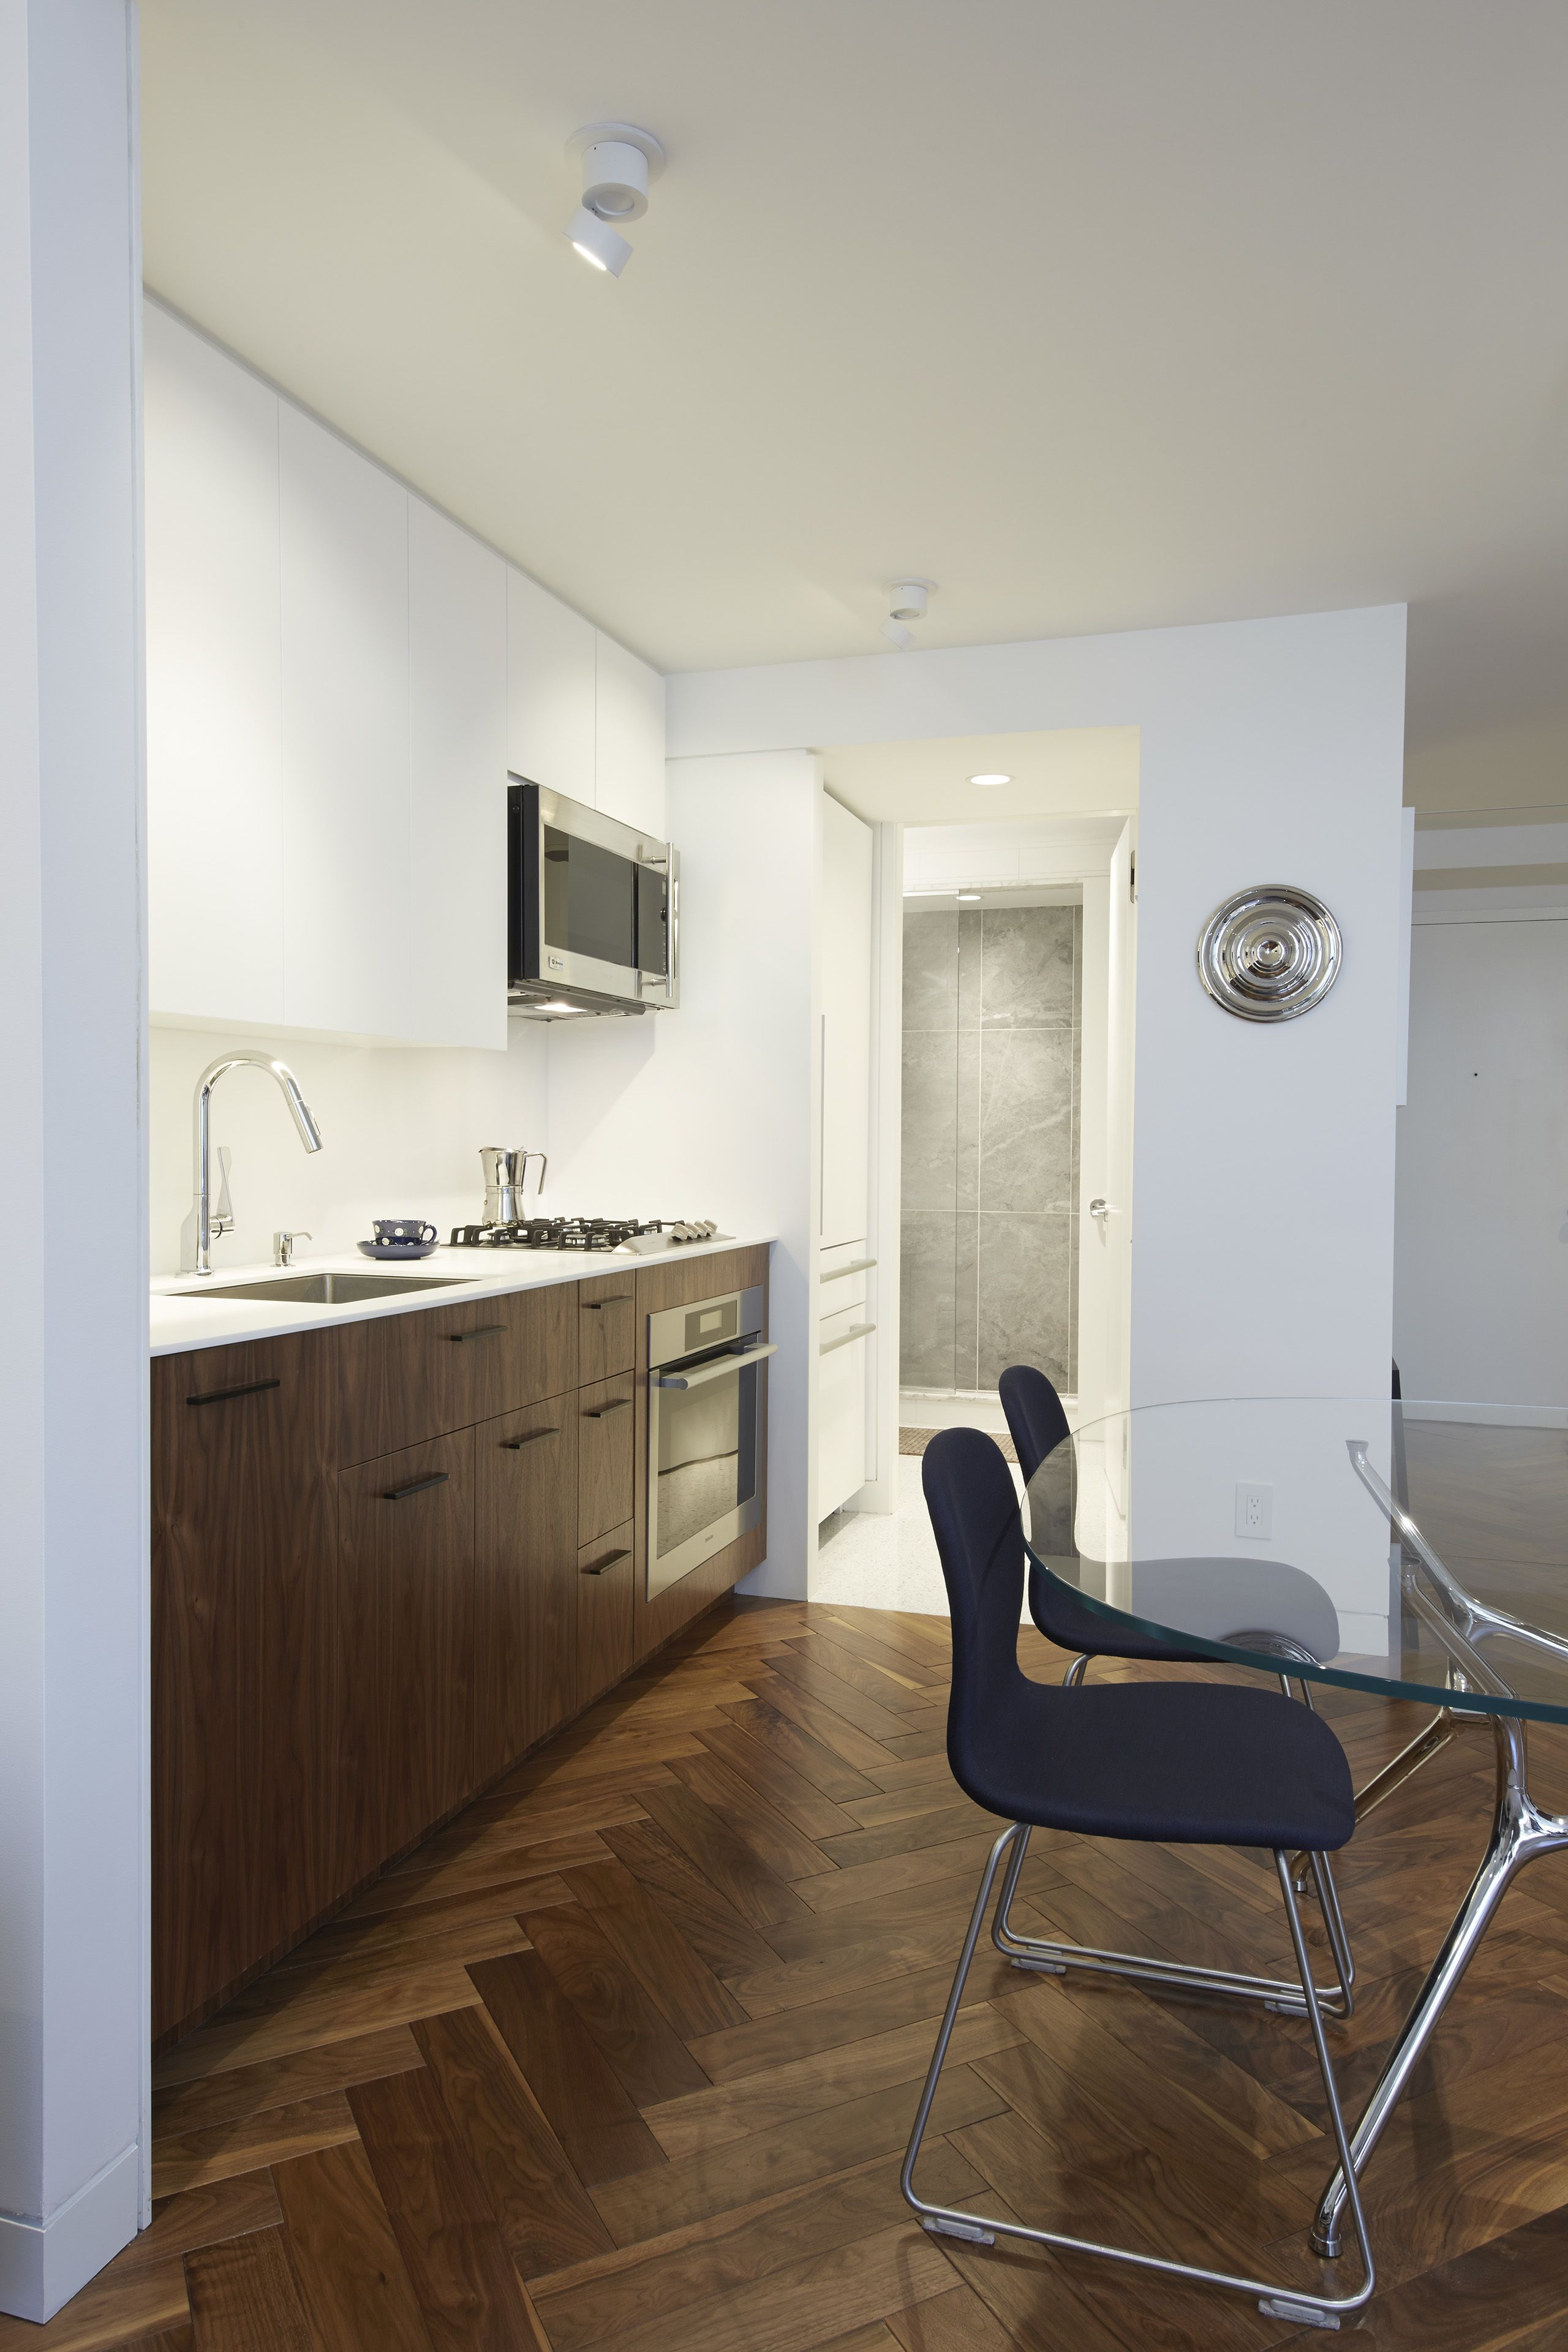 Photo 7 of 11 in Cozy and Compact: 10 Tiny Homes in the Big Apple ...